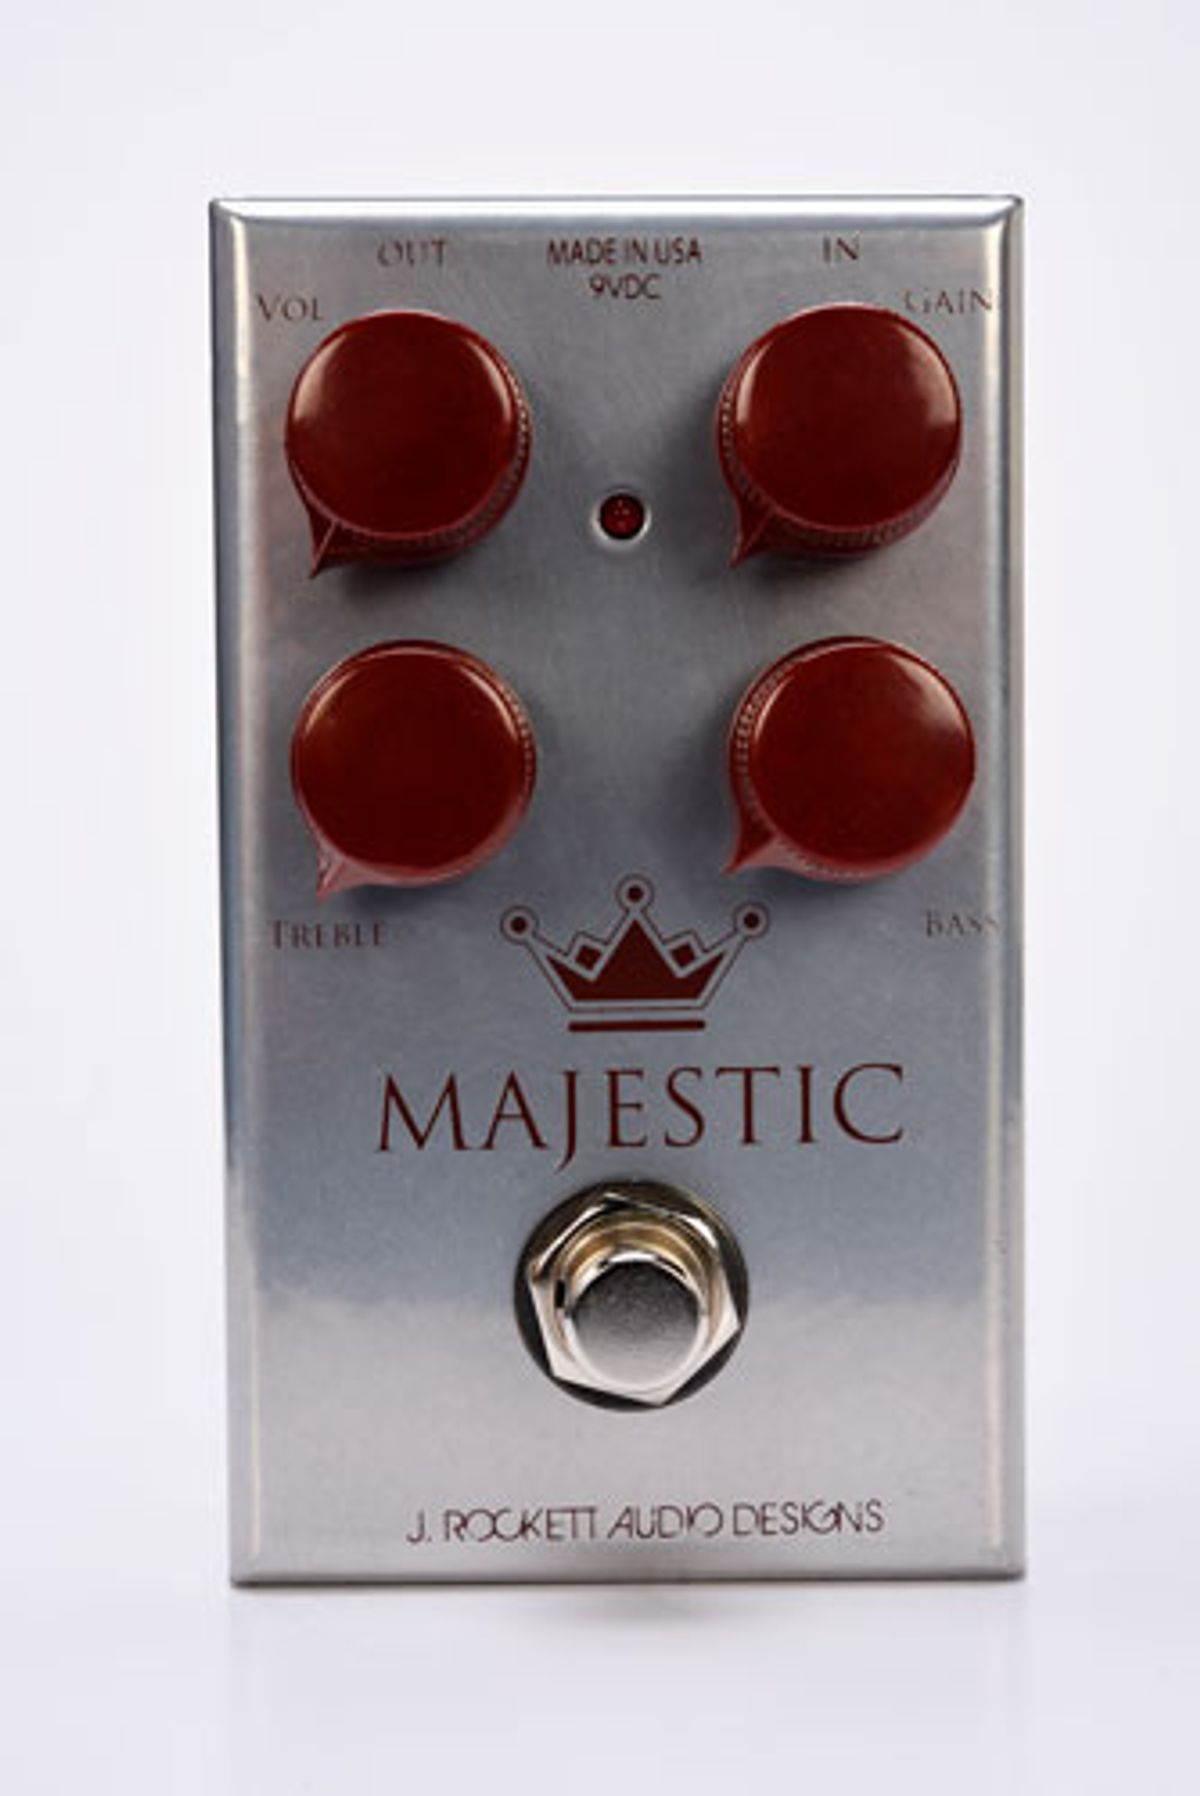 J. Rockett Audio Designs Releases the Majestic Overdrive